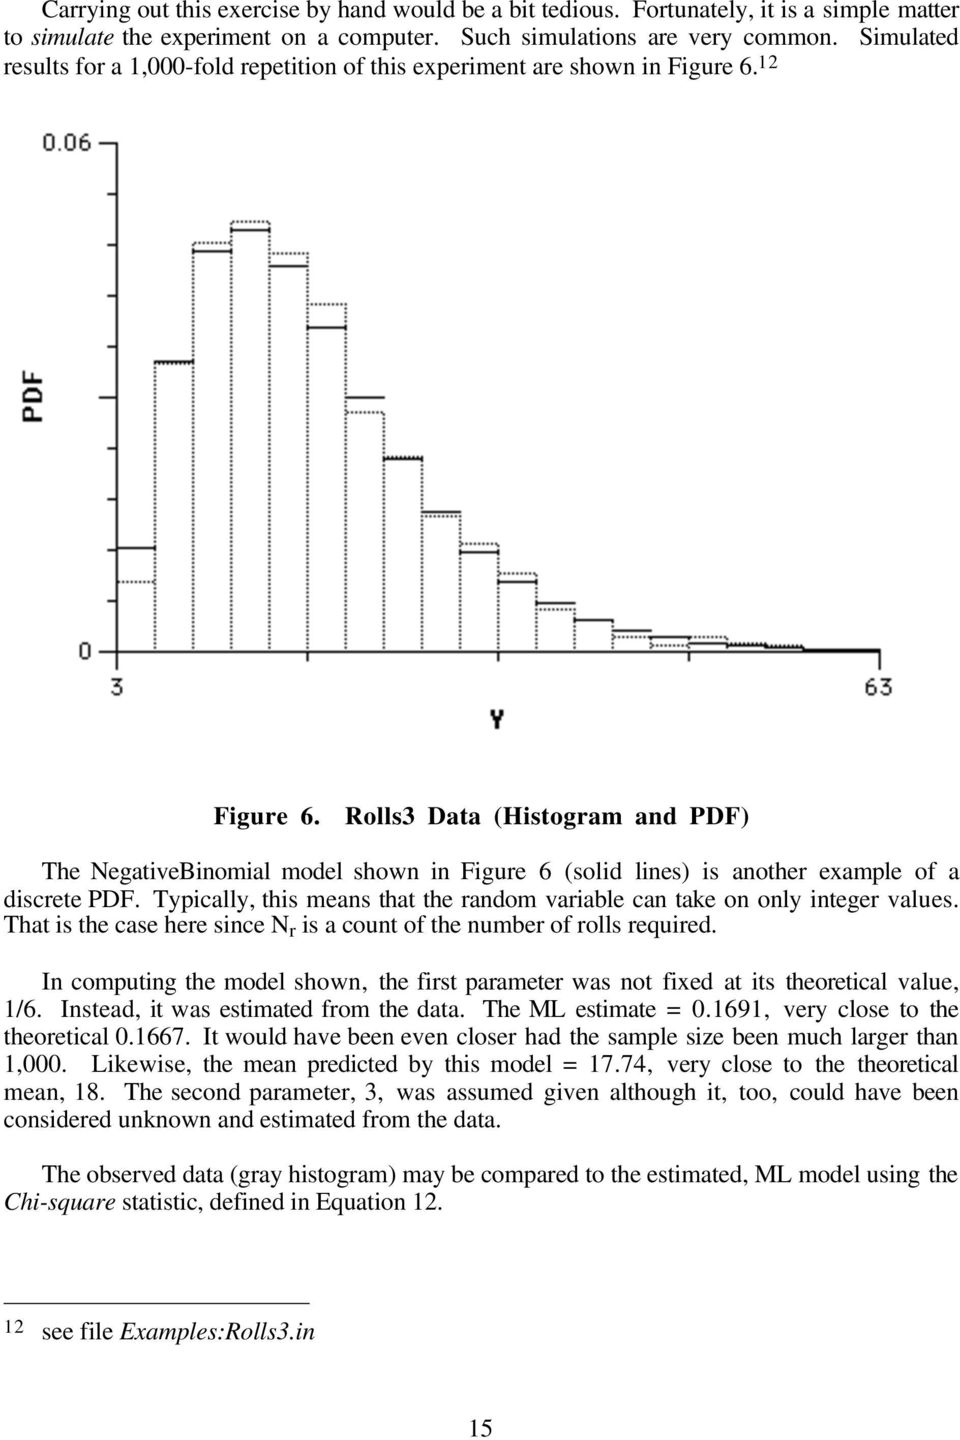 Rolls3 Data (Histogram and PDF) The NegativeBinomial model shown in Figure 6 (solid lines) is another example of a discrete PDF.